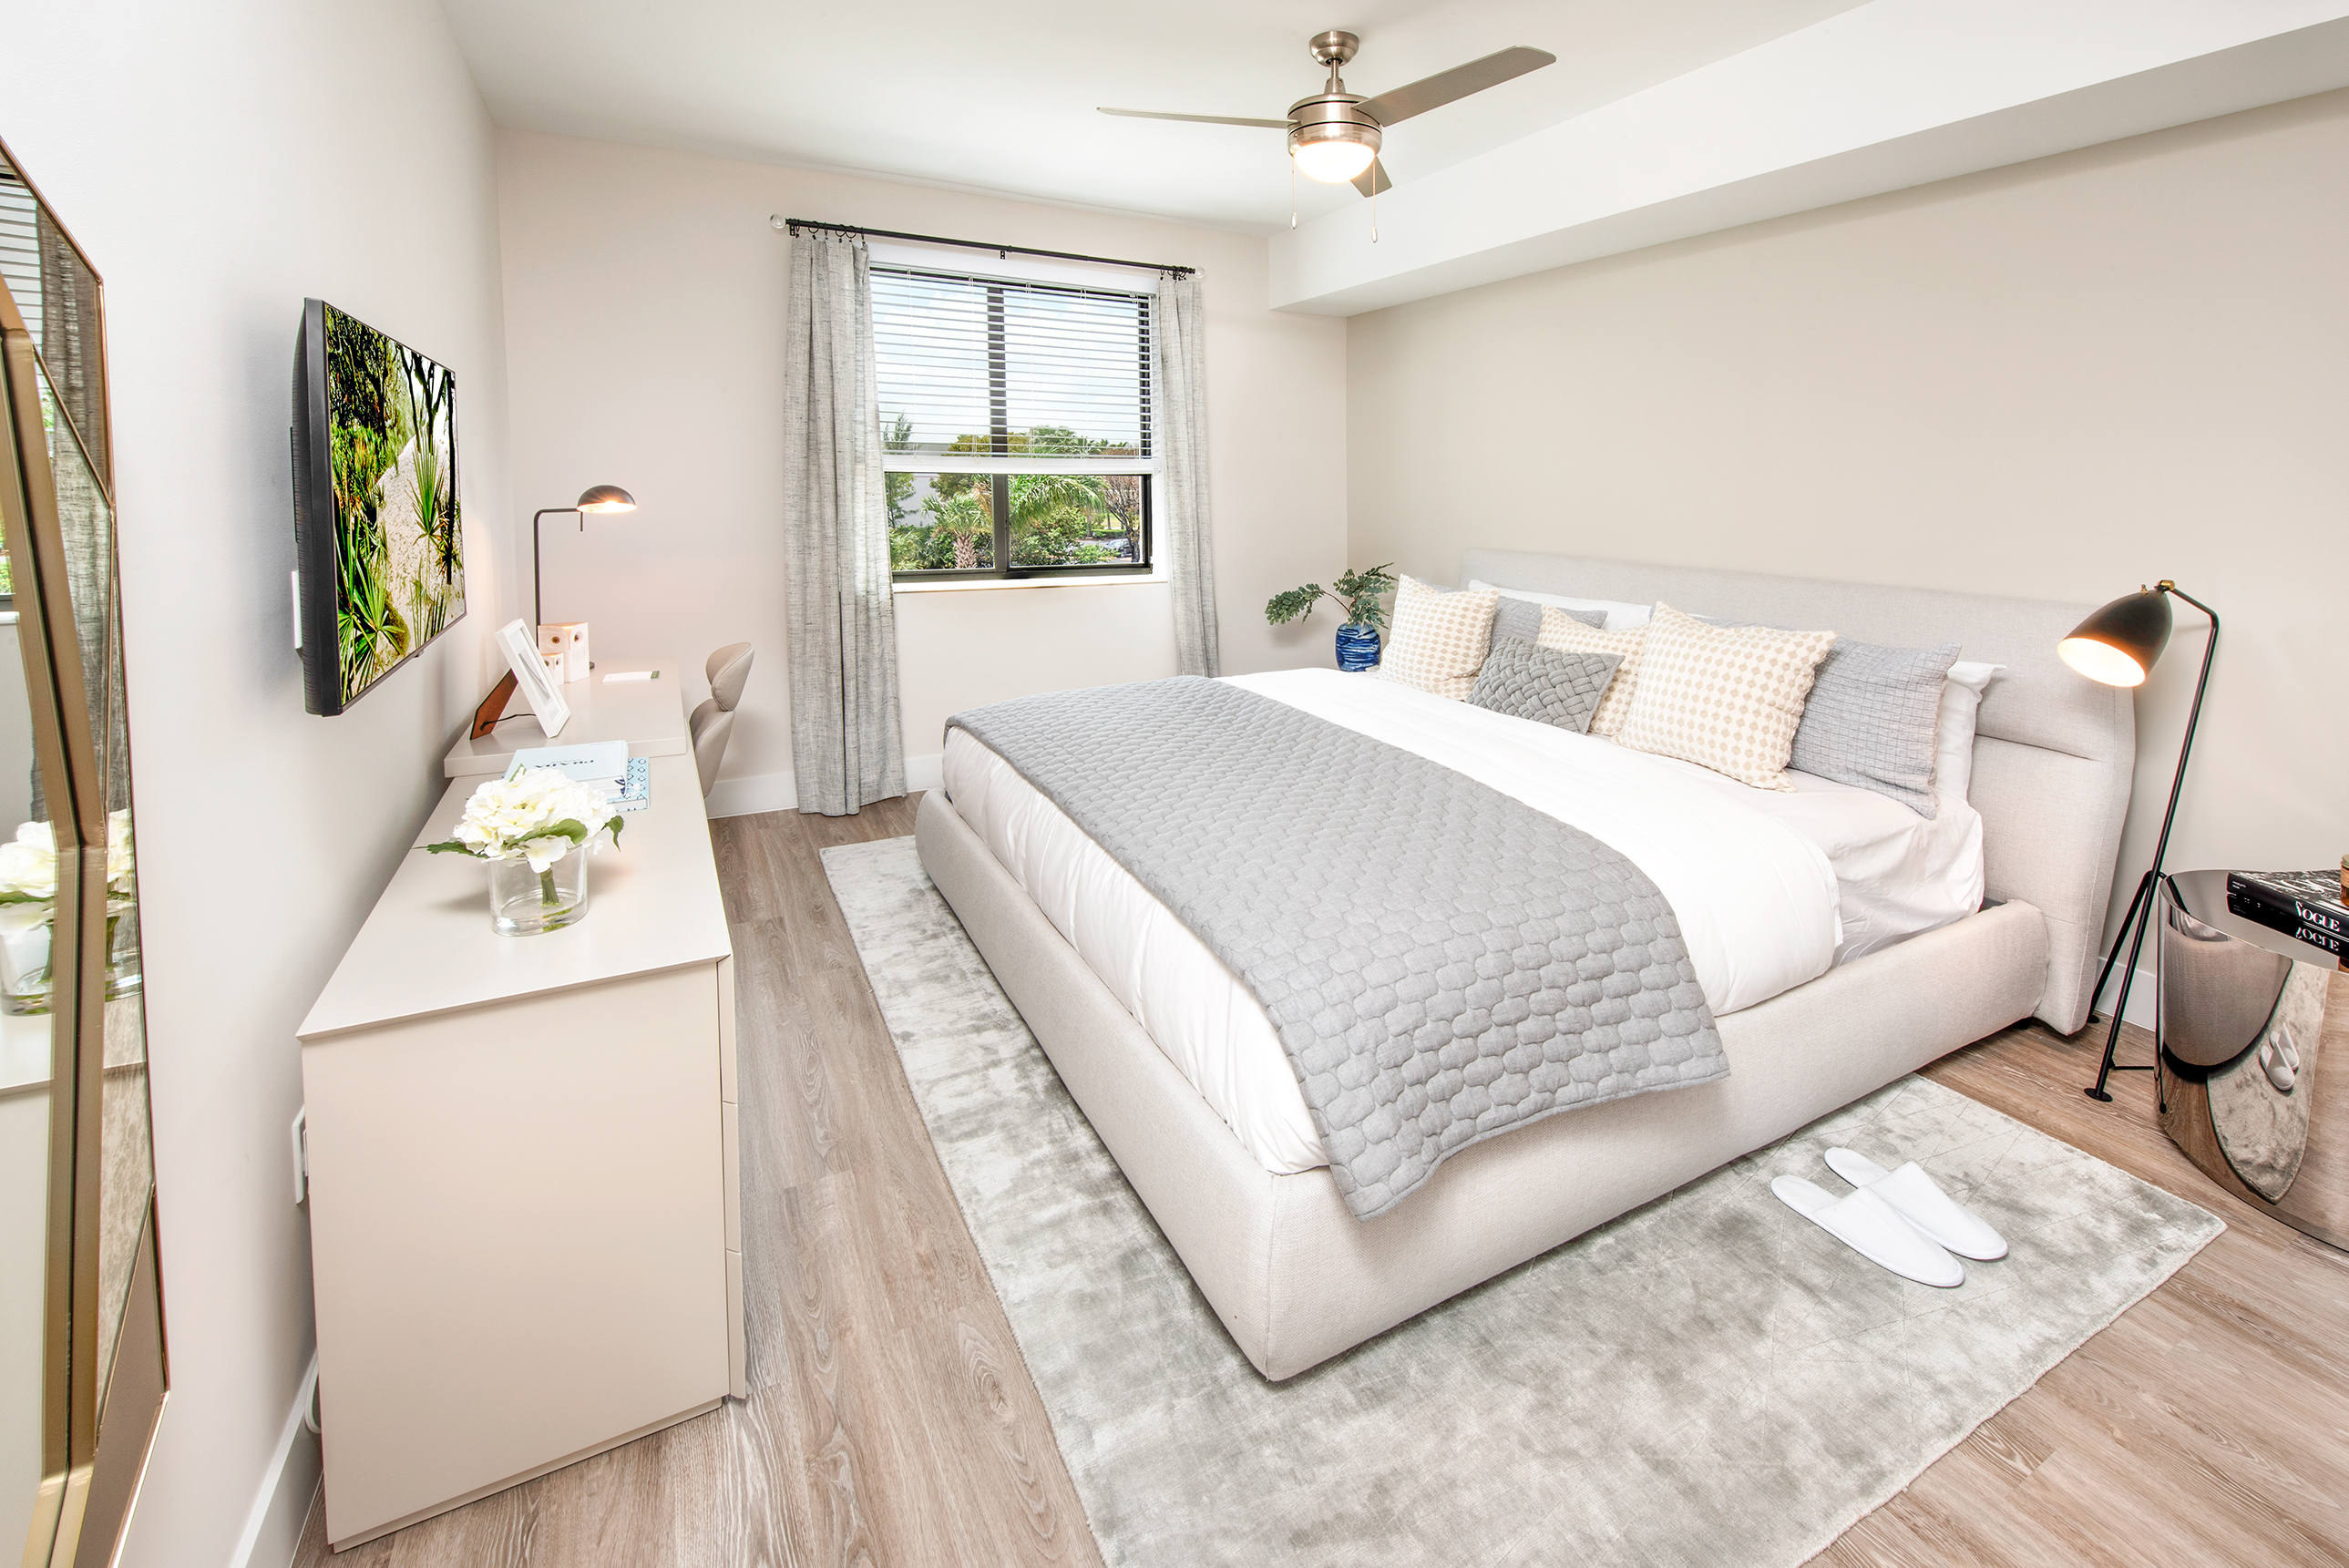 luxurious bedroom with gray blanket